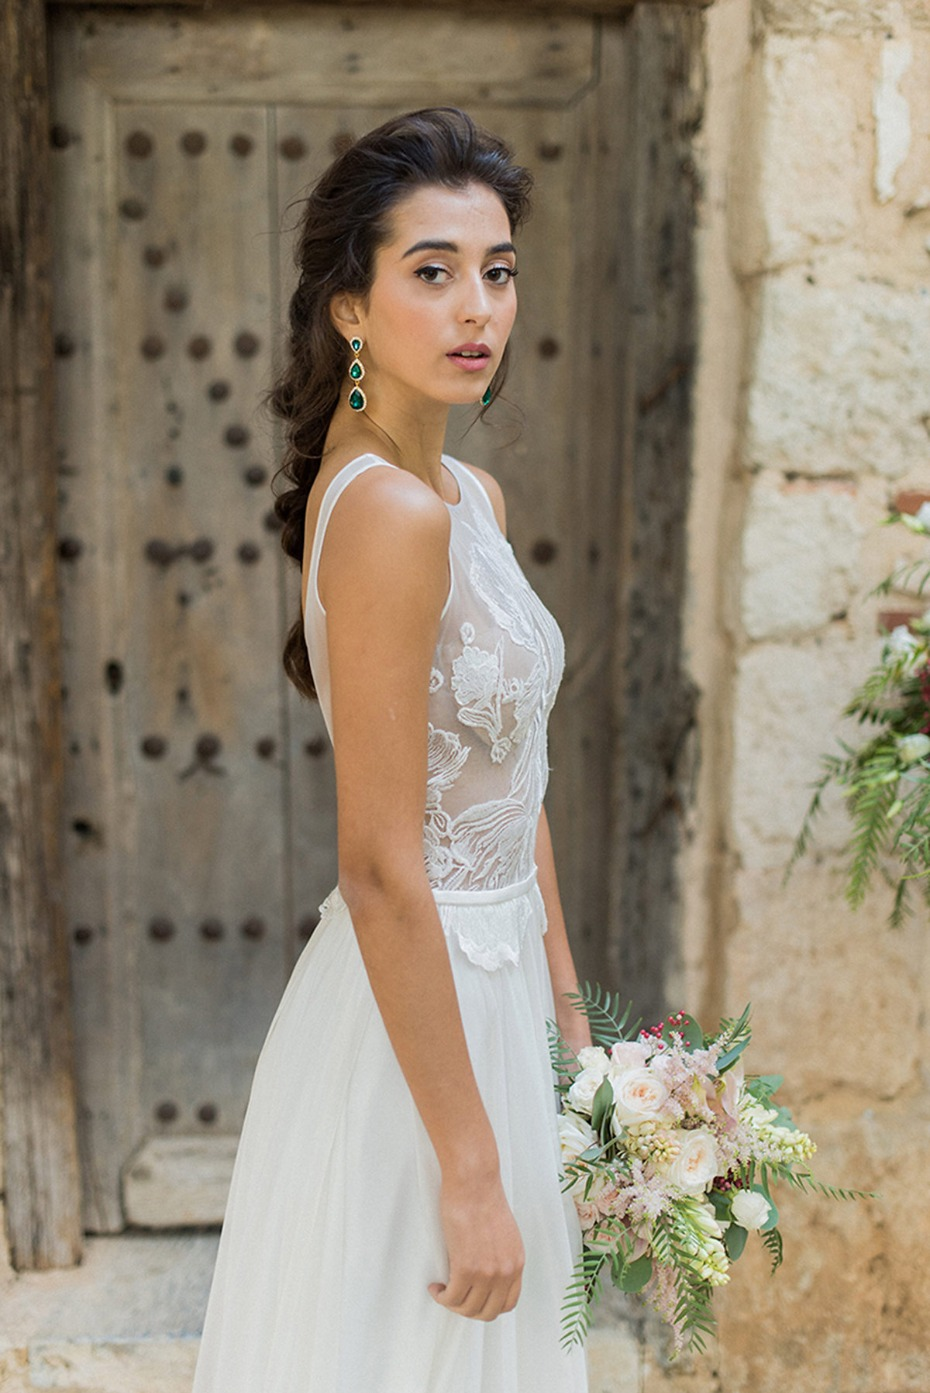 sheer top wedding gown and emerald tear drop earrings